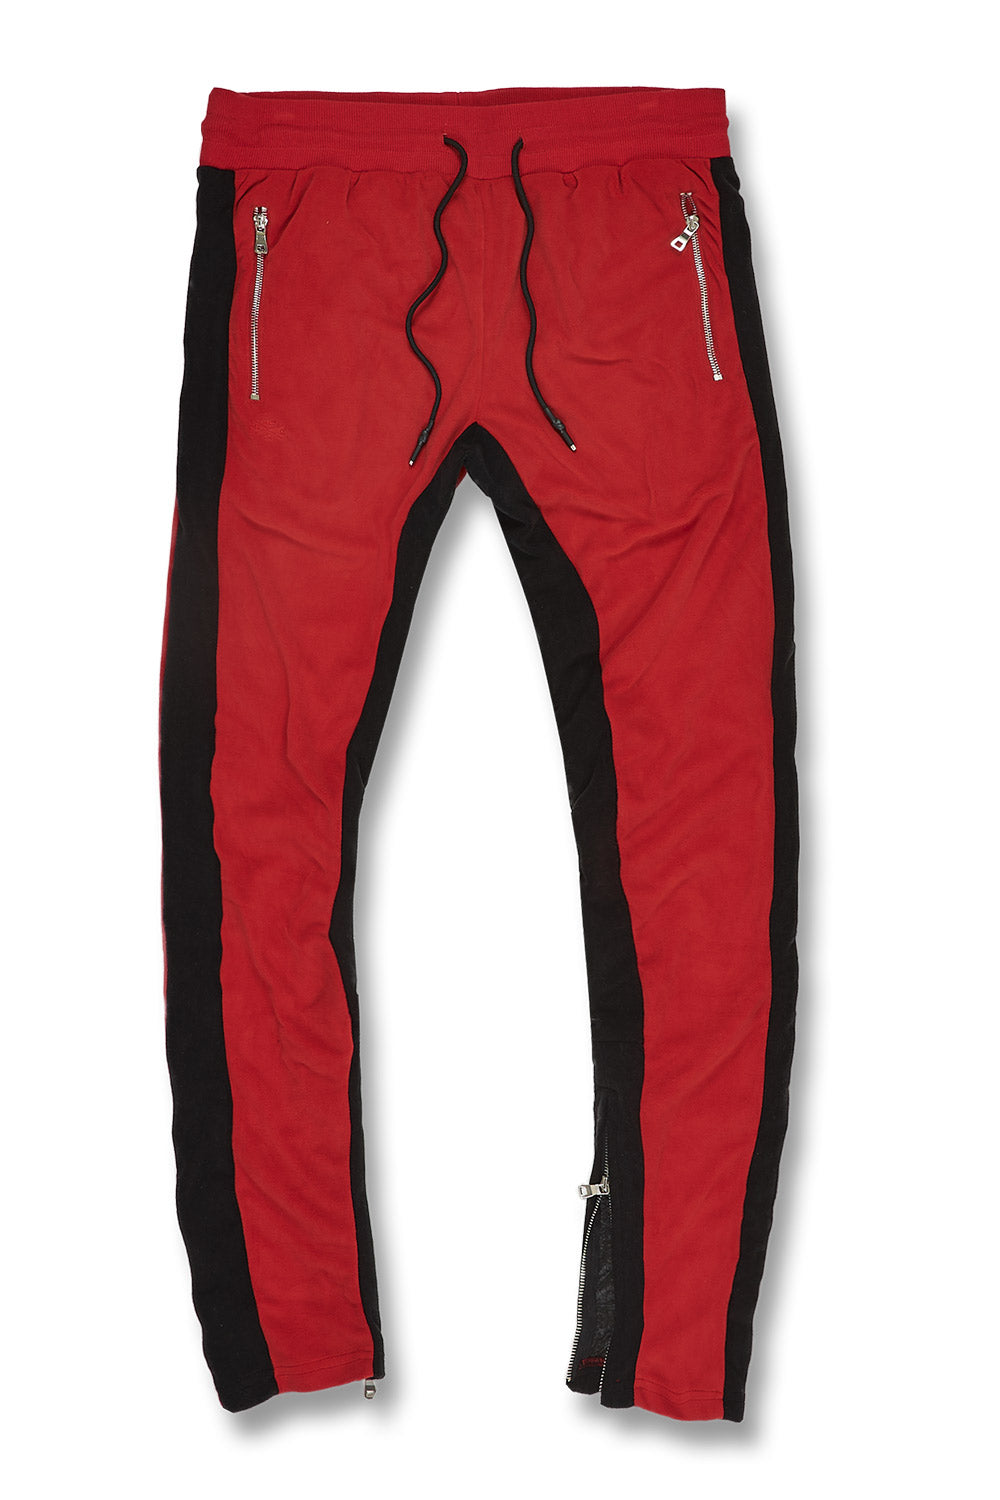 Jordan Craig - Big Men's Luciano Velour Pants (Crimson)